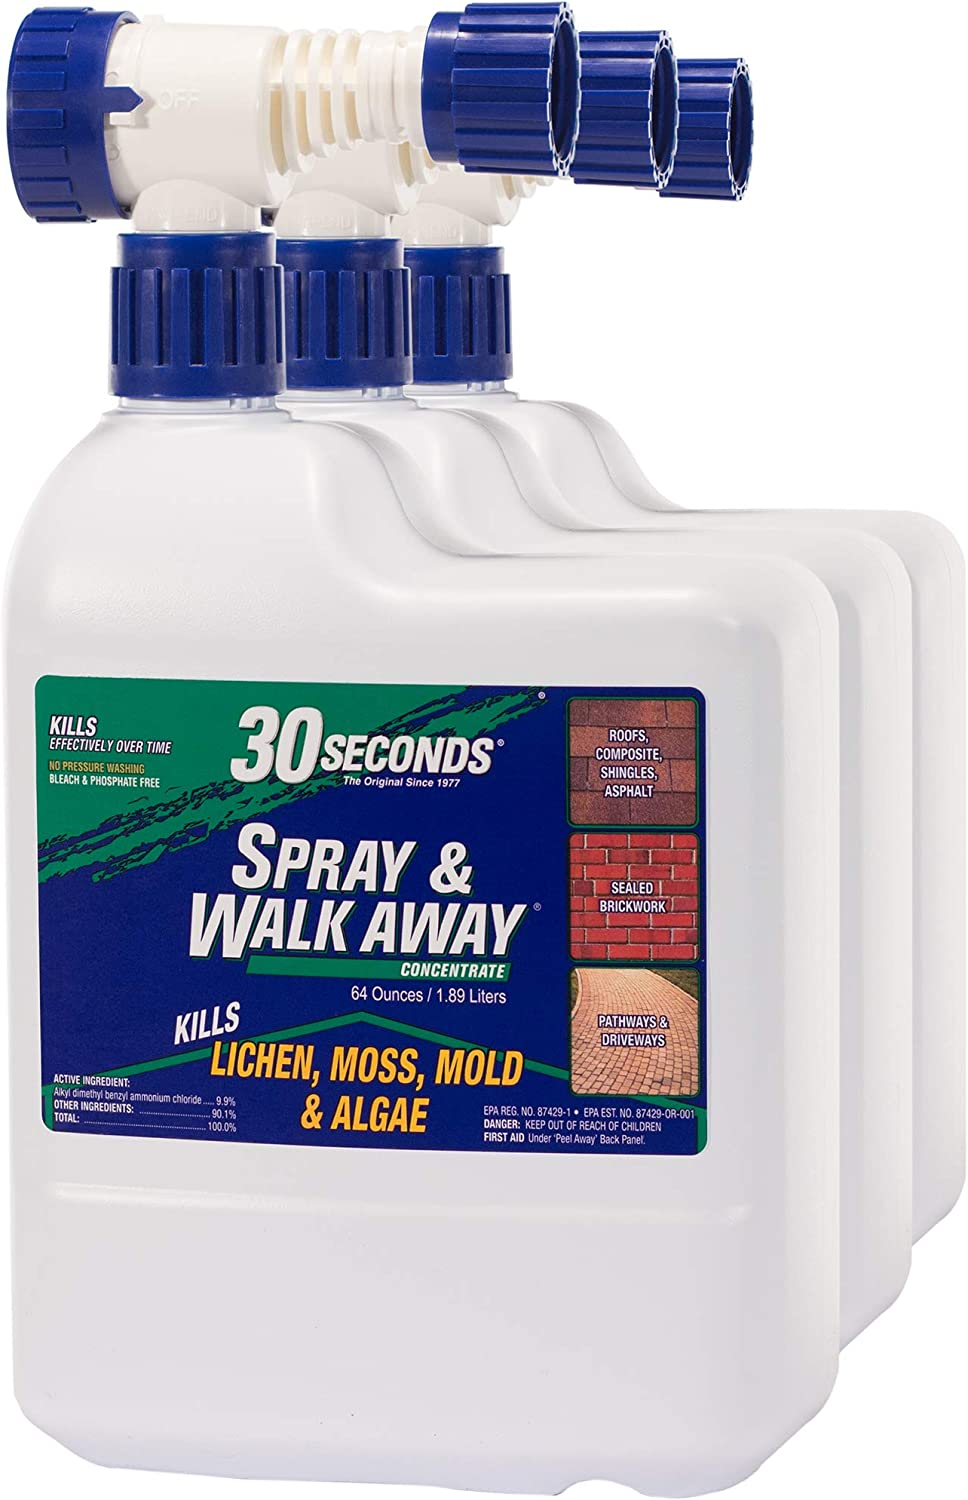 30 SECONDS Cleaners 64SAWA 3PA Spray & Walk Away Cleaner, 64 oz with Hose End Sprayer (Pack of 3)